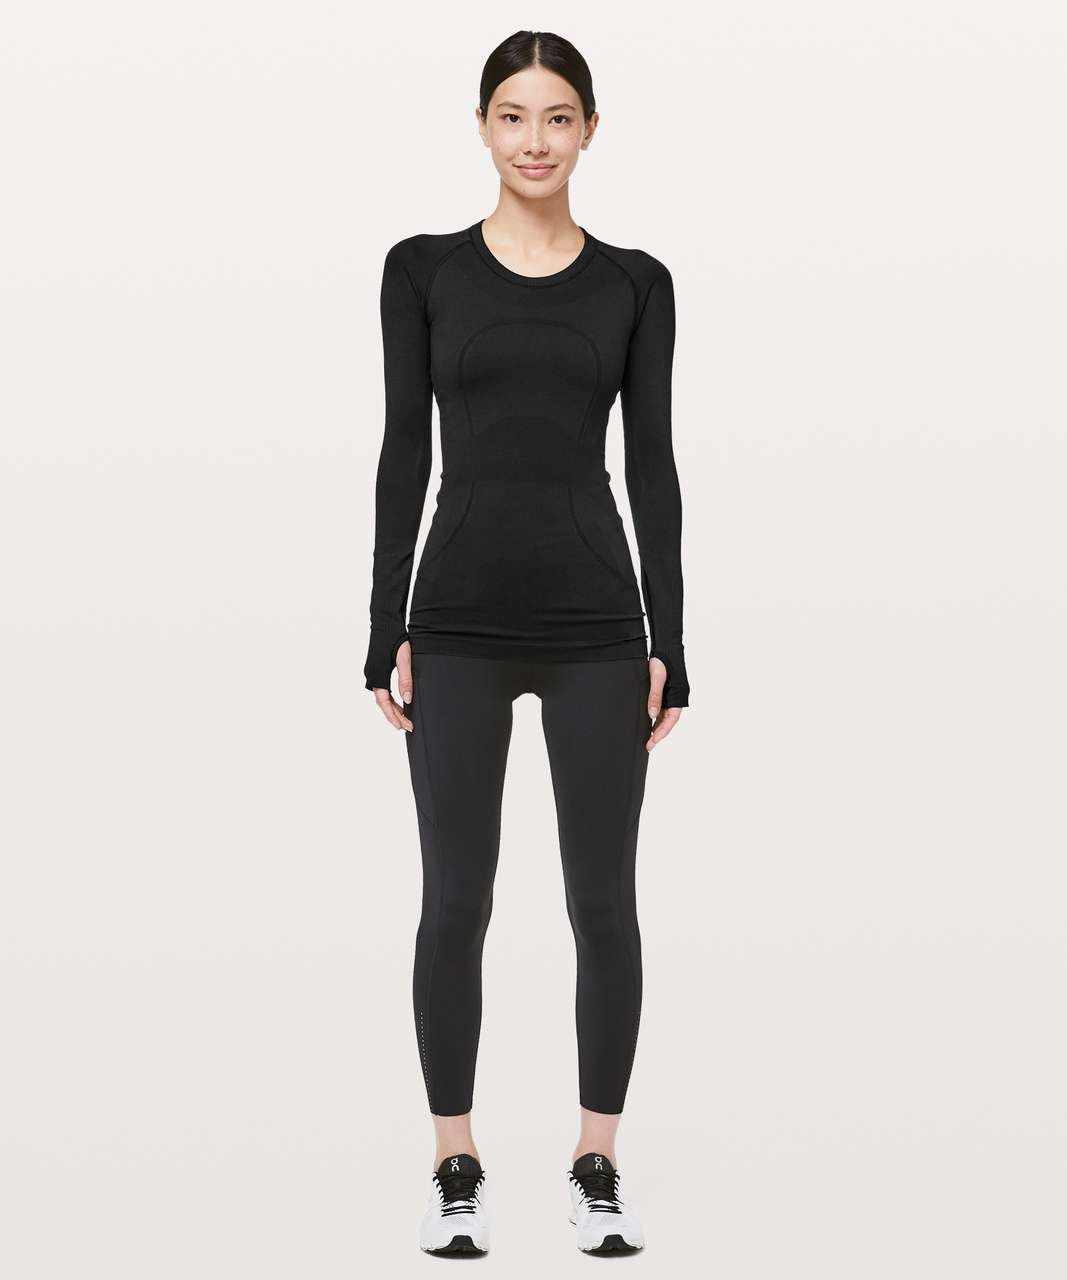 Lululemon Swiftly Tech Long Sleeve Crew *Lunar New Year - Black / Black